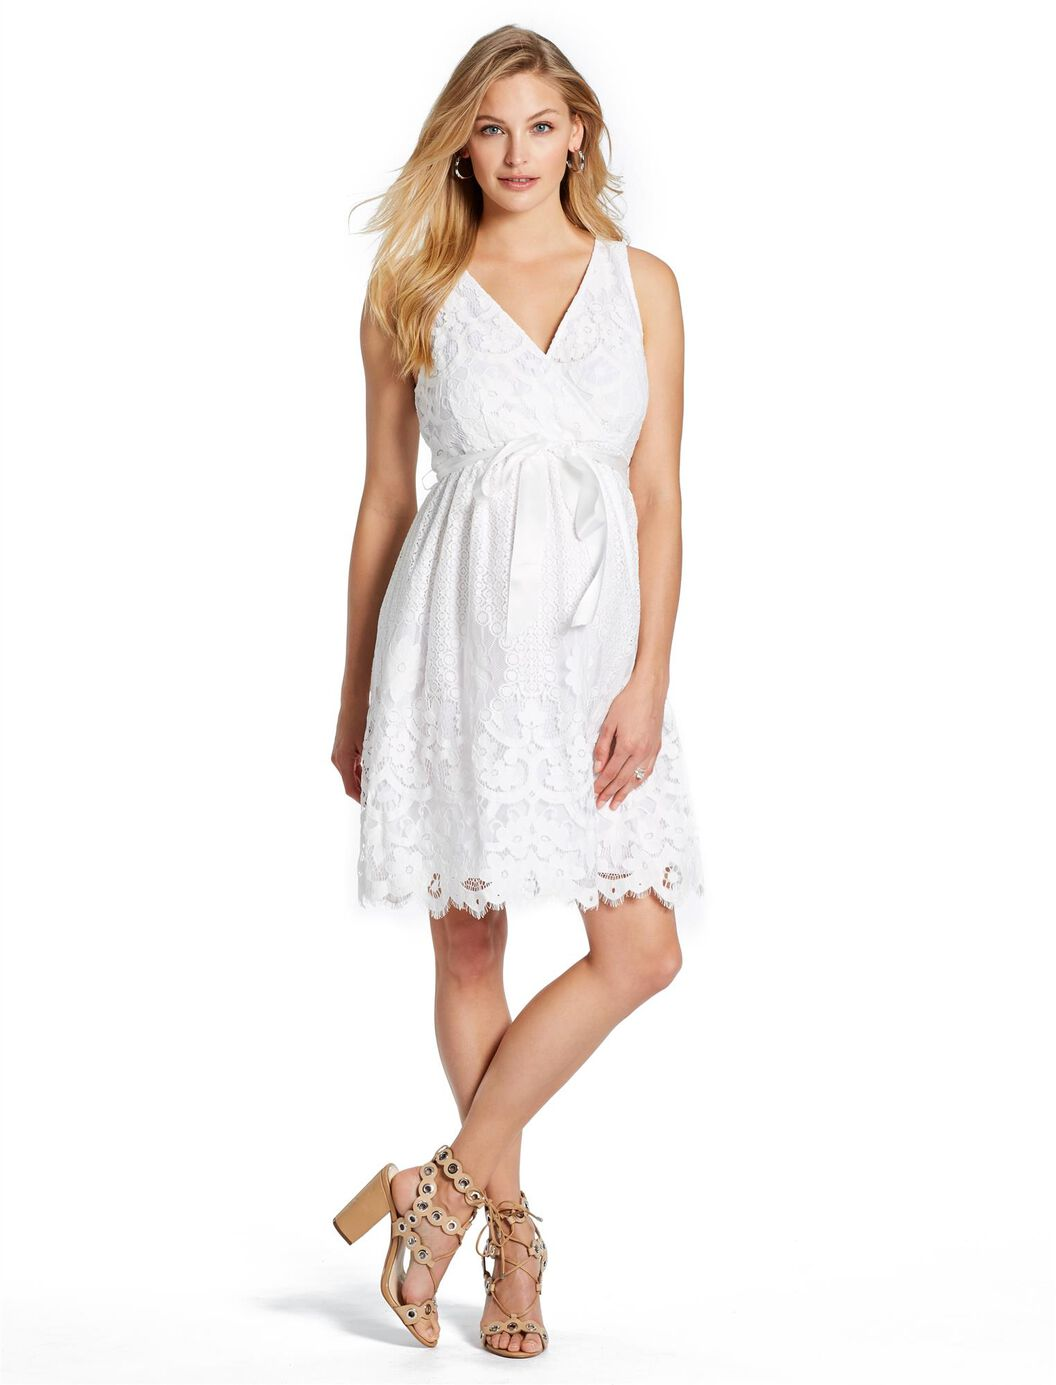 Jessica Simpson Lace Maternity Dress at Motherhood Maternity in Victor, NY | Tuggl